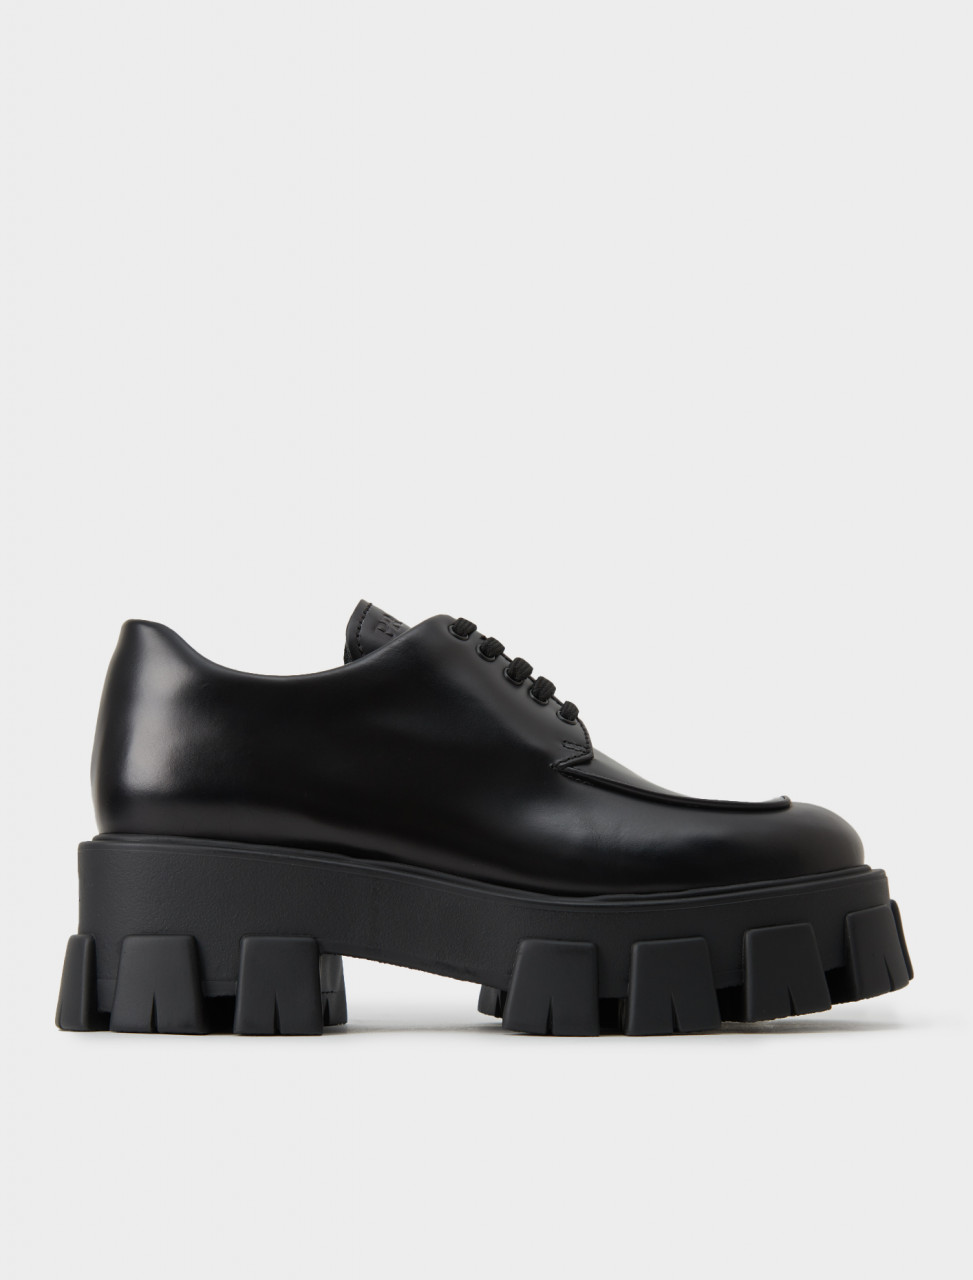 Prada Monolith Chunky Laced Shoe in Black Leather